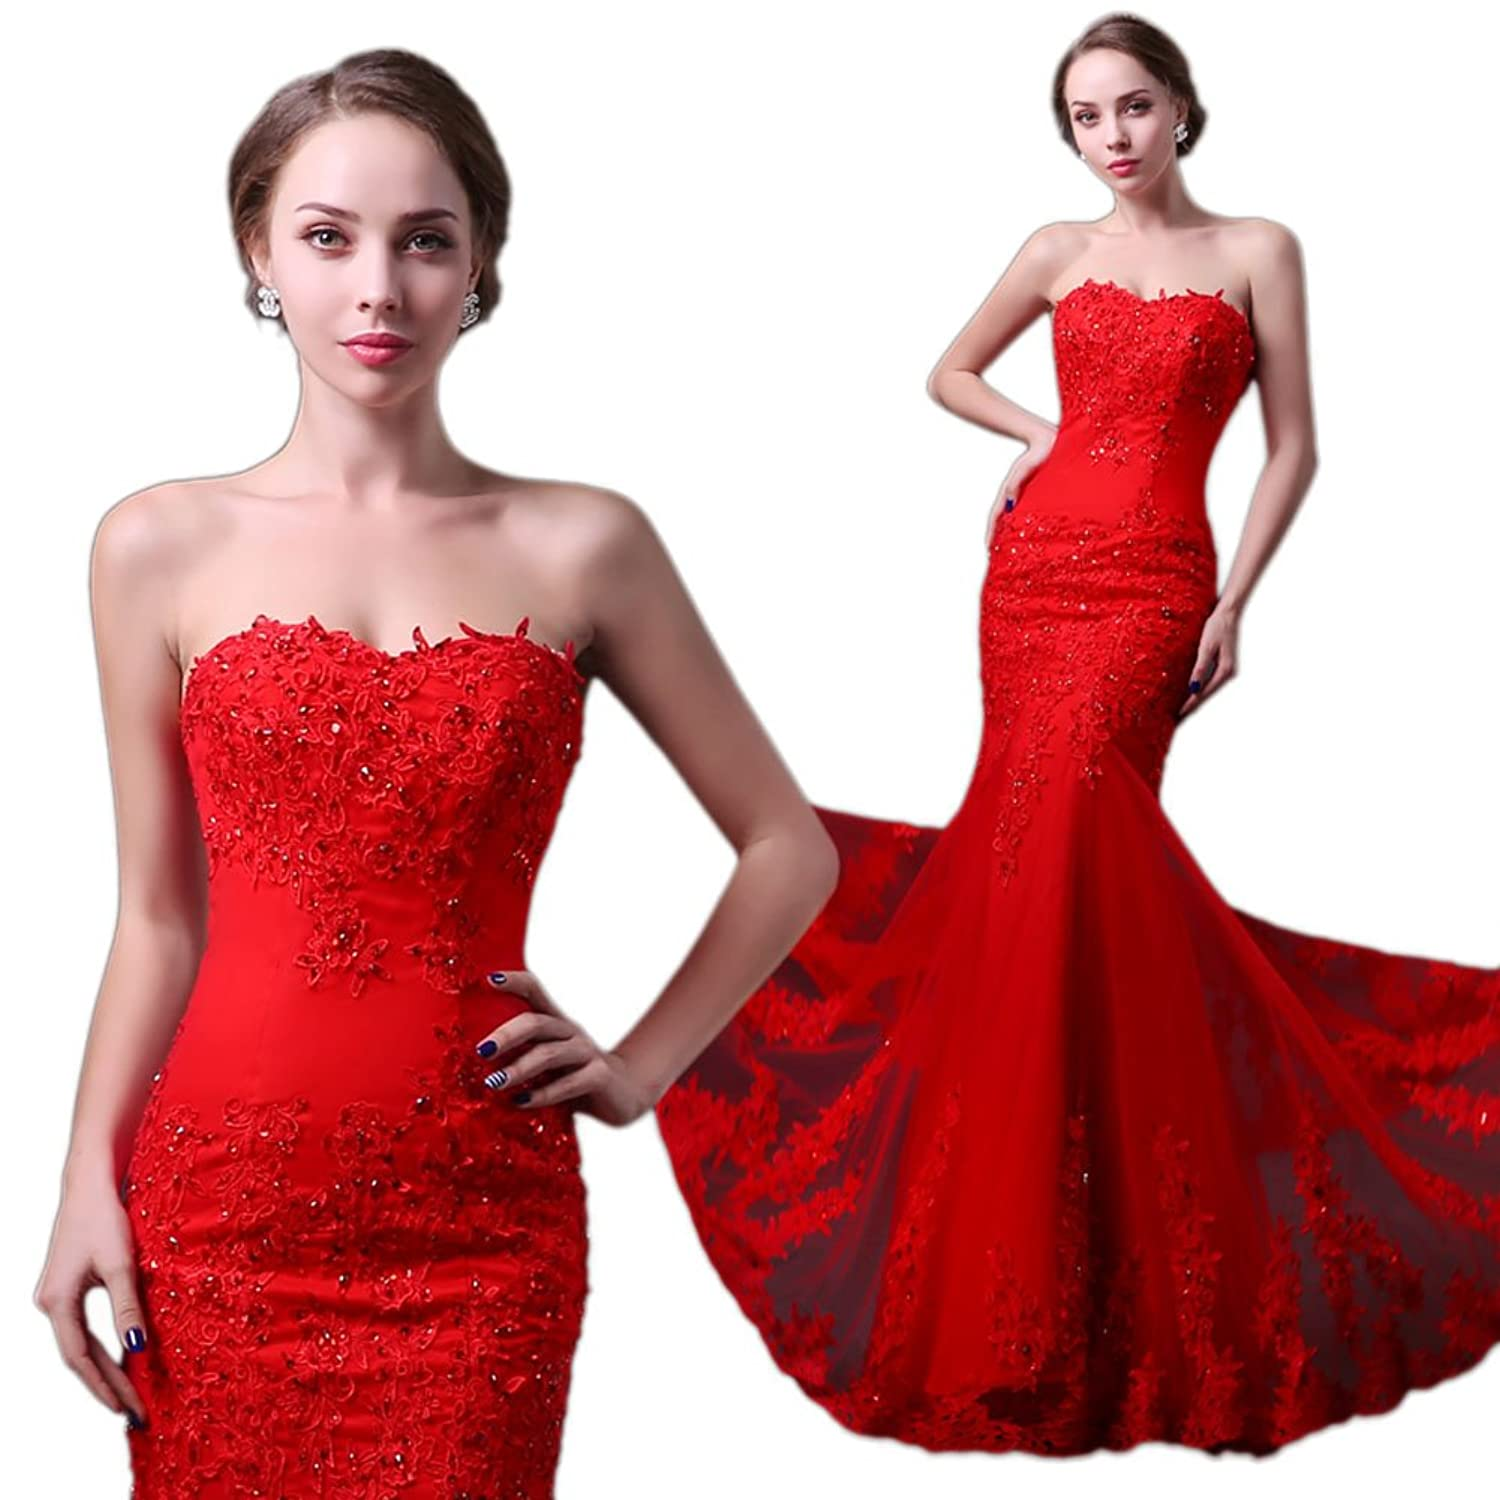 Vimans Women's Long Red Sweetheart Beaded Lace Mermaid Evening Party Dresses